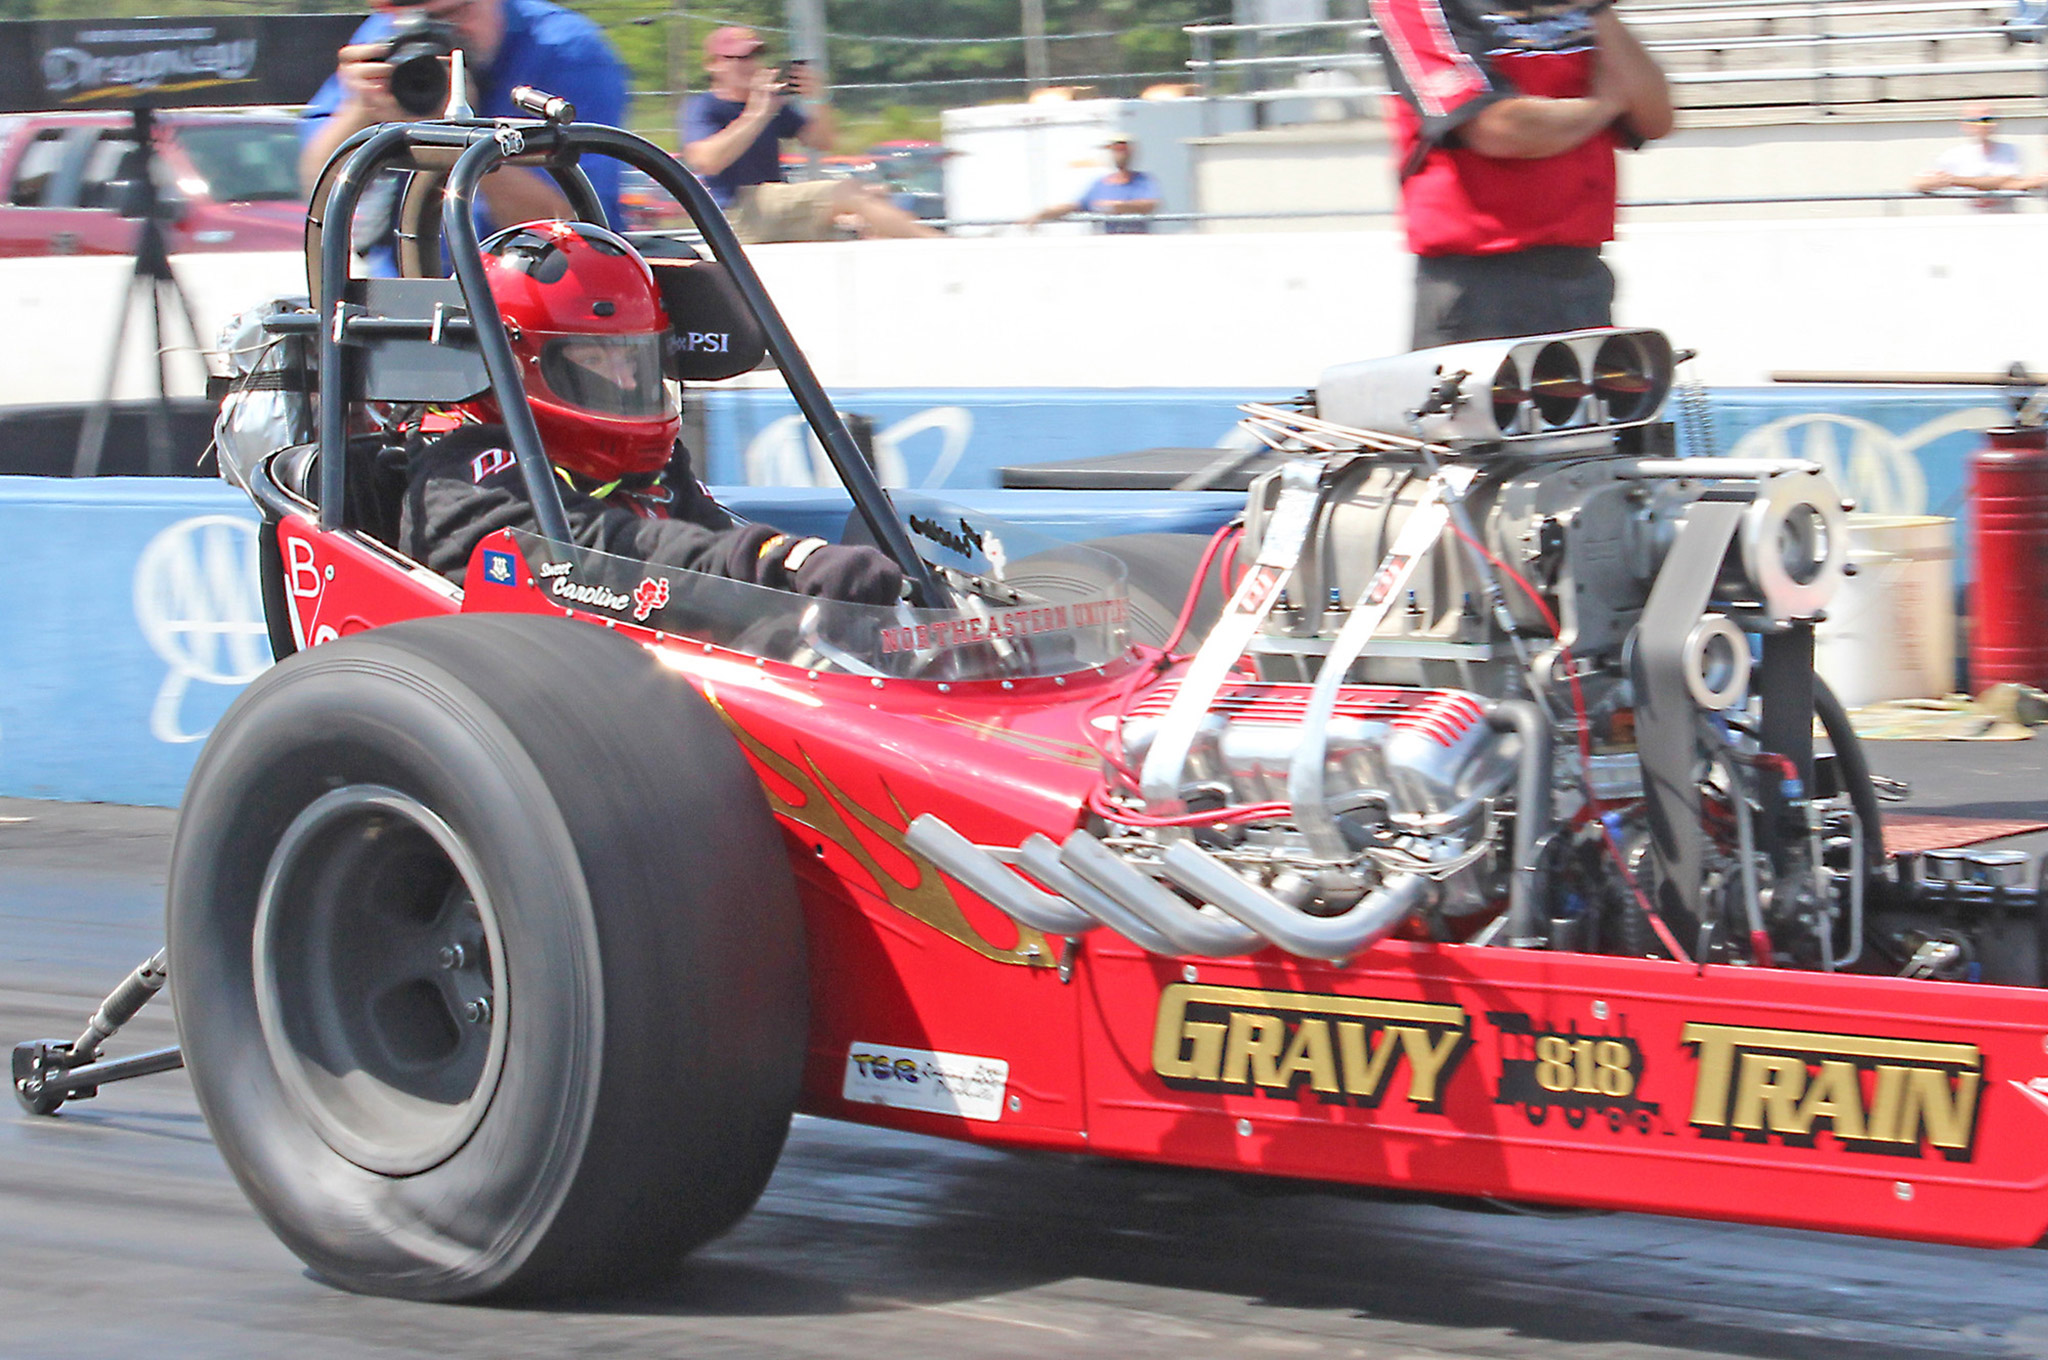 Caroline Galvin of Danbury, Connecticut, ran this unique 409-powered front engine dragster when she ran an 8.517 on an 8.50 index in Comp Eliminator.